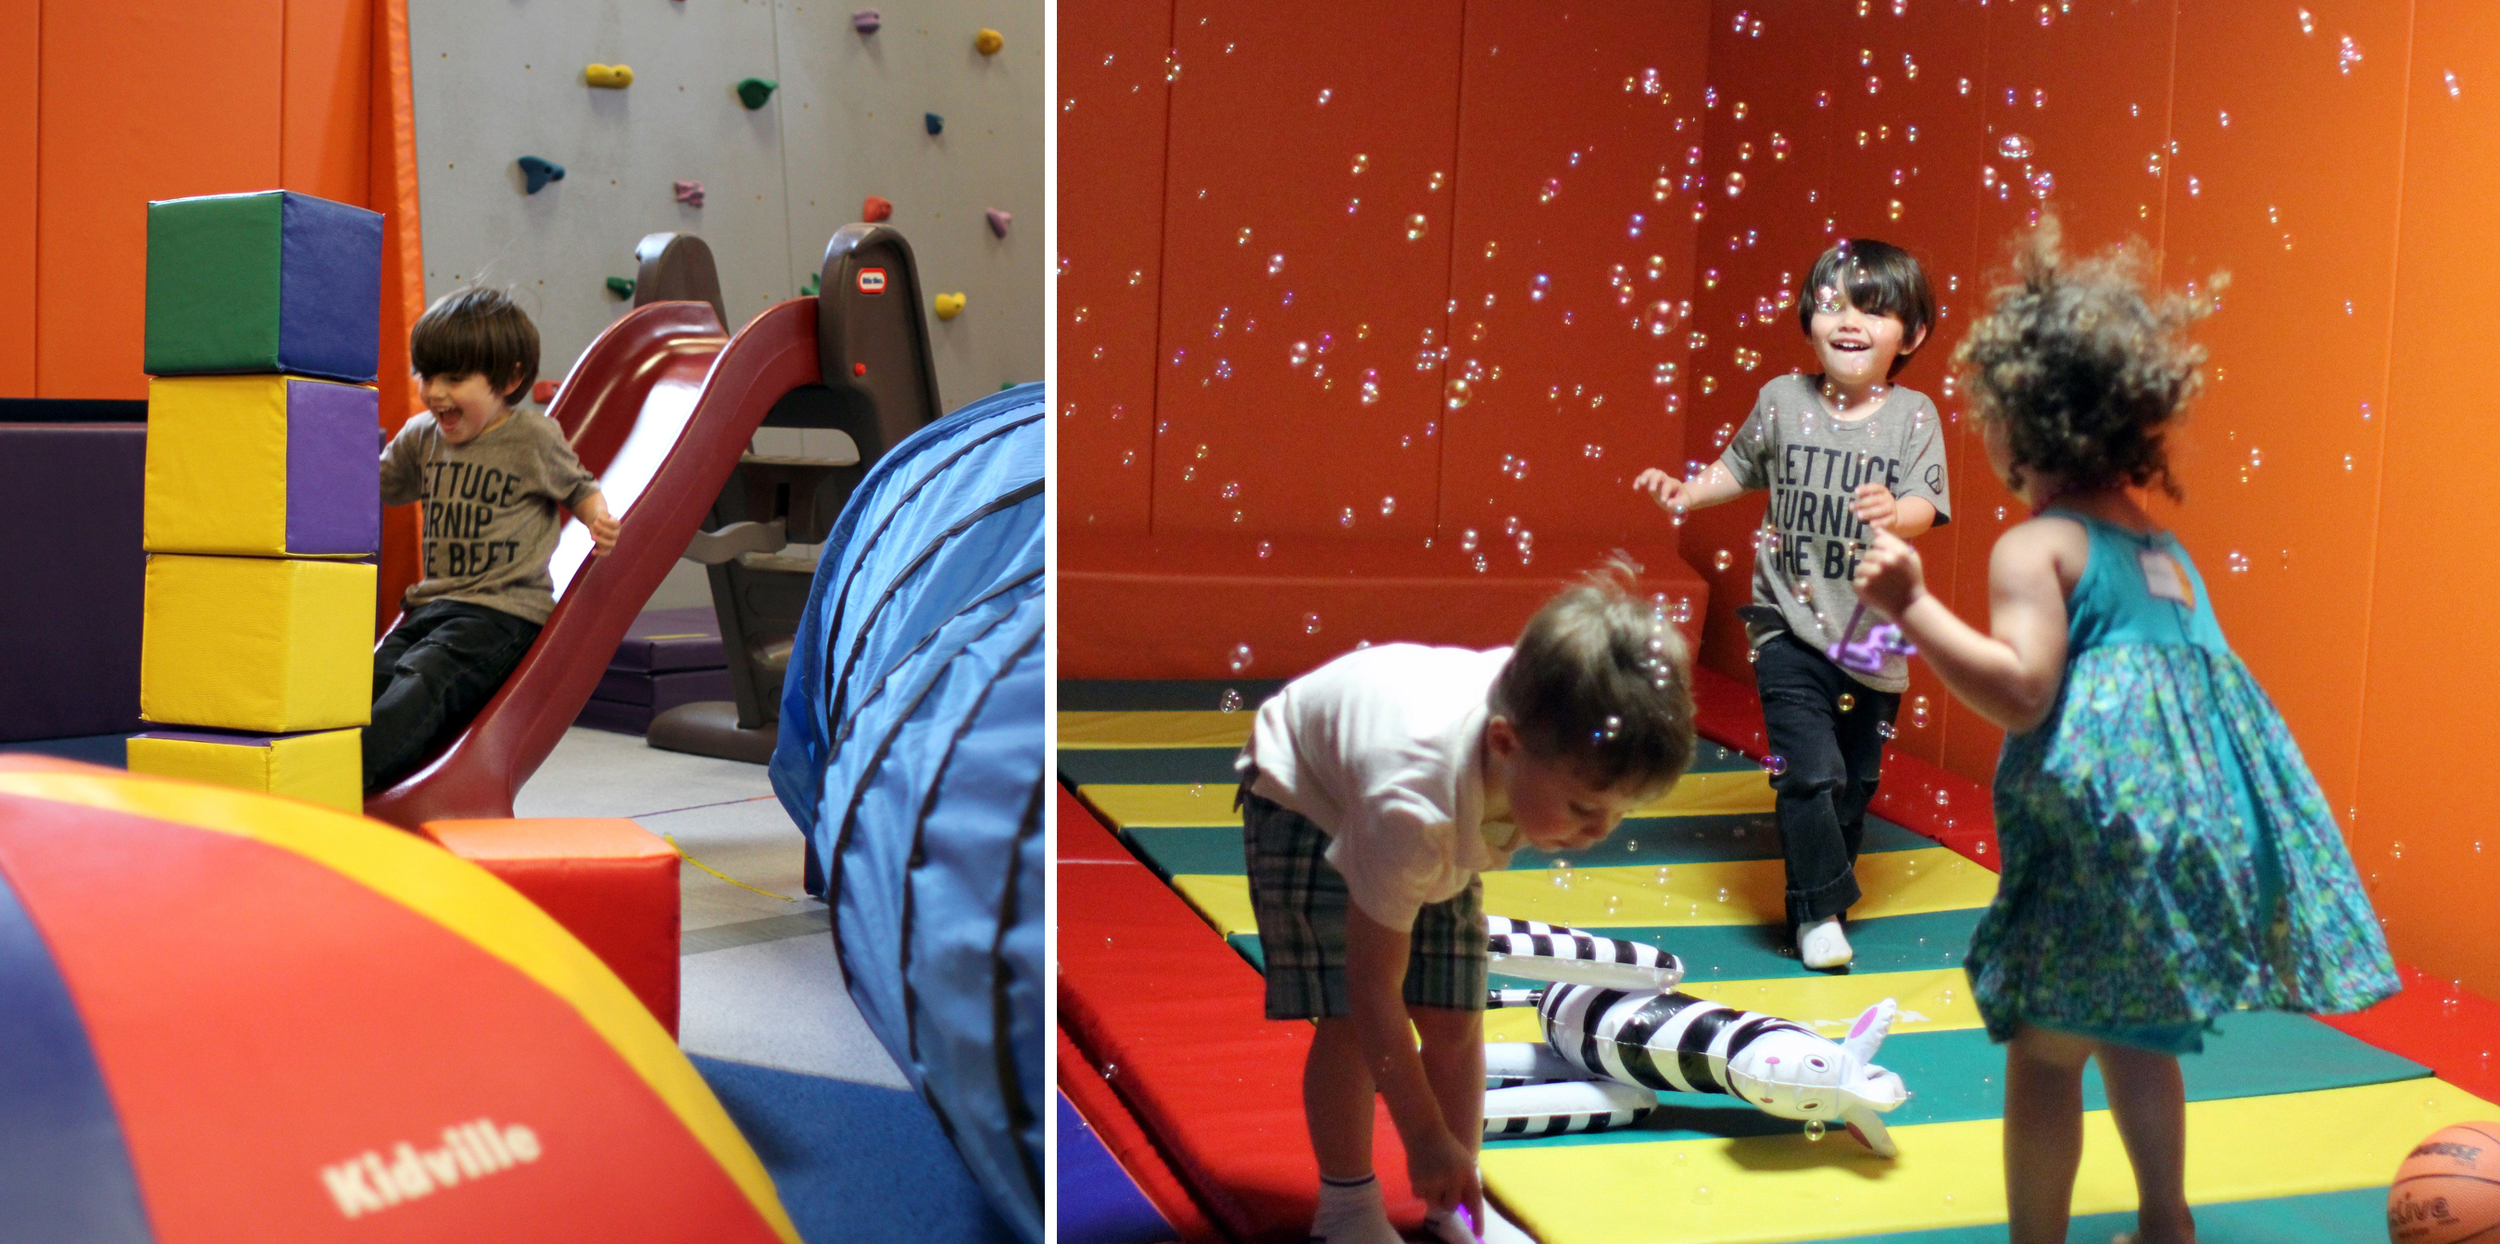 """Anna's birthday party at Kidville was the catalyst for The Best Day Ever. It started with a visit to the pool where Everett and I have our Saturday morning swimming lessons, which is pretty sweet in itself. But the real magic kicked in after nap, when we got on the subway train together. Somehow we've managed to go all this time without ever having to take the kids on the subway (we always just drive wherever we need to go), but Kidville is only a few stops away, and Everett is big enough to appreciate public transportation. Riding the subway train was such a treat! He was such a good boy, saying """"we go to the train now!"""" the whole walk to the station, andholding my hand the entire time we were underground. The whole thing was so exciting. And of course, right outside of the Carroll Street subway stop in the block between the station and Kidville is... a playground! Good thing we were 15 minutes early and had some time to play! But nothing beat the actual party, where there was an indoor gym, a trampoline, dancing in bubbles, balloons and juice and red grapes and pizza! Getting sent home with a balloon was the icing on the cake, and Everett now putters around the house going """"balloon, too,"""" dragging it behind him everywhere he goes."""